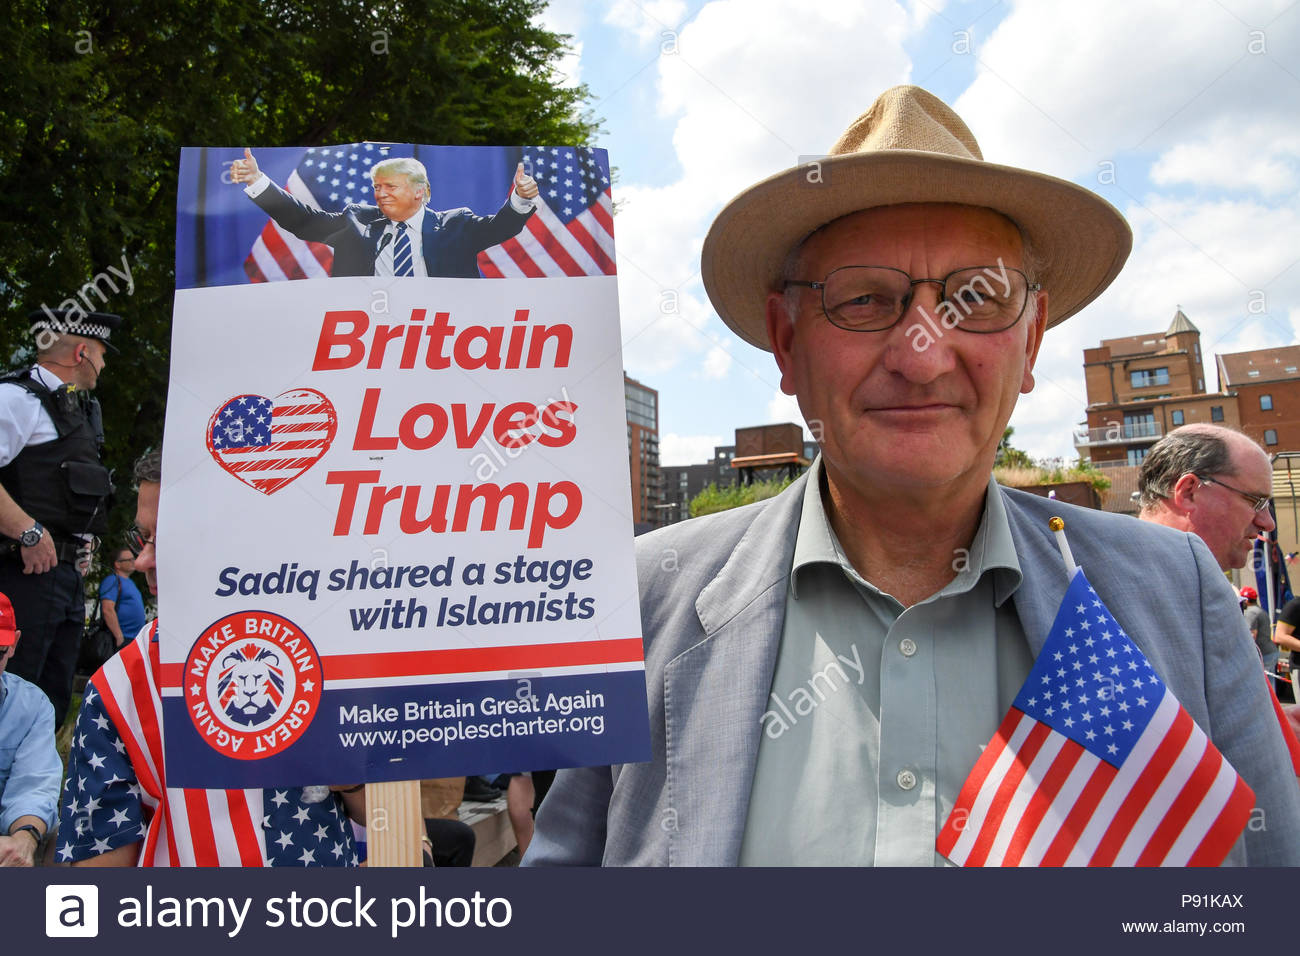 London, United Kingdom. 14th July, 2018. A protester holds a sign reading 'Britain loves Trump, Sadiq shares a stage with Islamists' as hundreds of Trump supporters gather outside the US embassy in London, UK on July 14, 2018 for a Welcoming Trump to London rally in the British capital. (c) copyright Credit: CrowdSpark/Alamy Live News - Stock Image